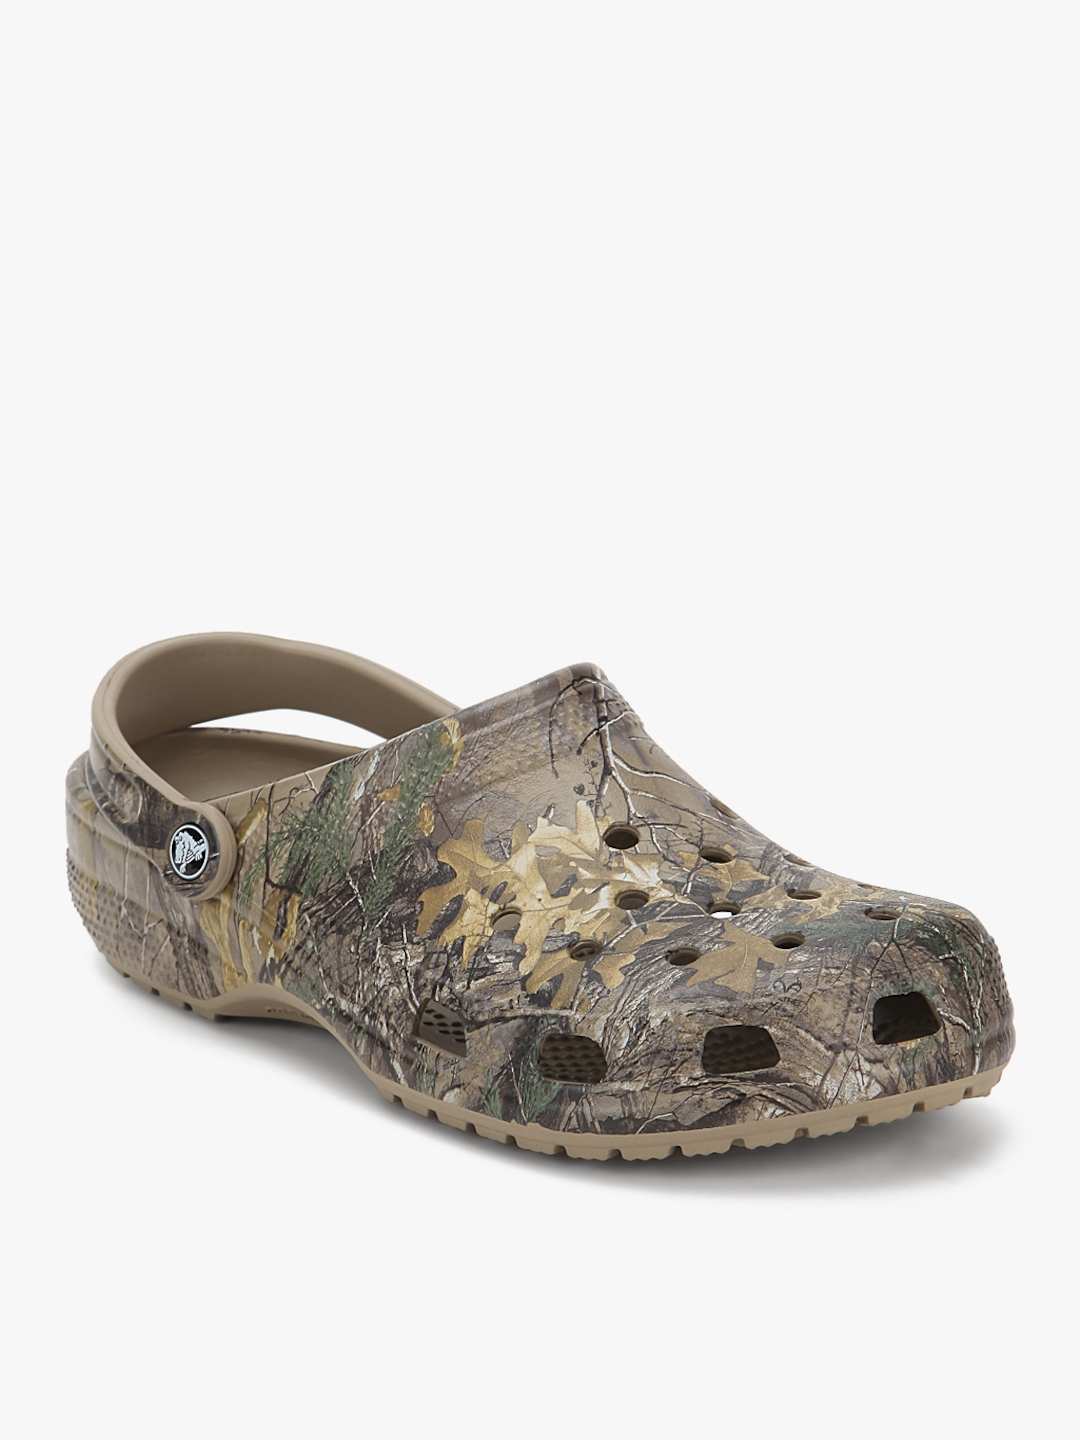 1f22806ab42 Buy Classic Realtree Xtra Multicoloured Clogs - Sandals for Men ...